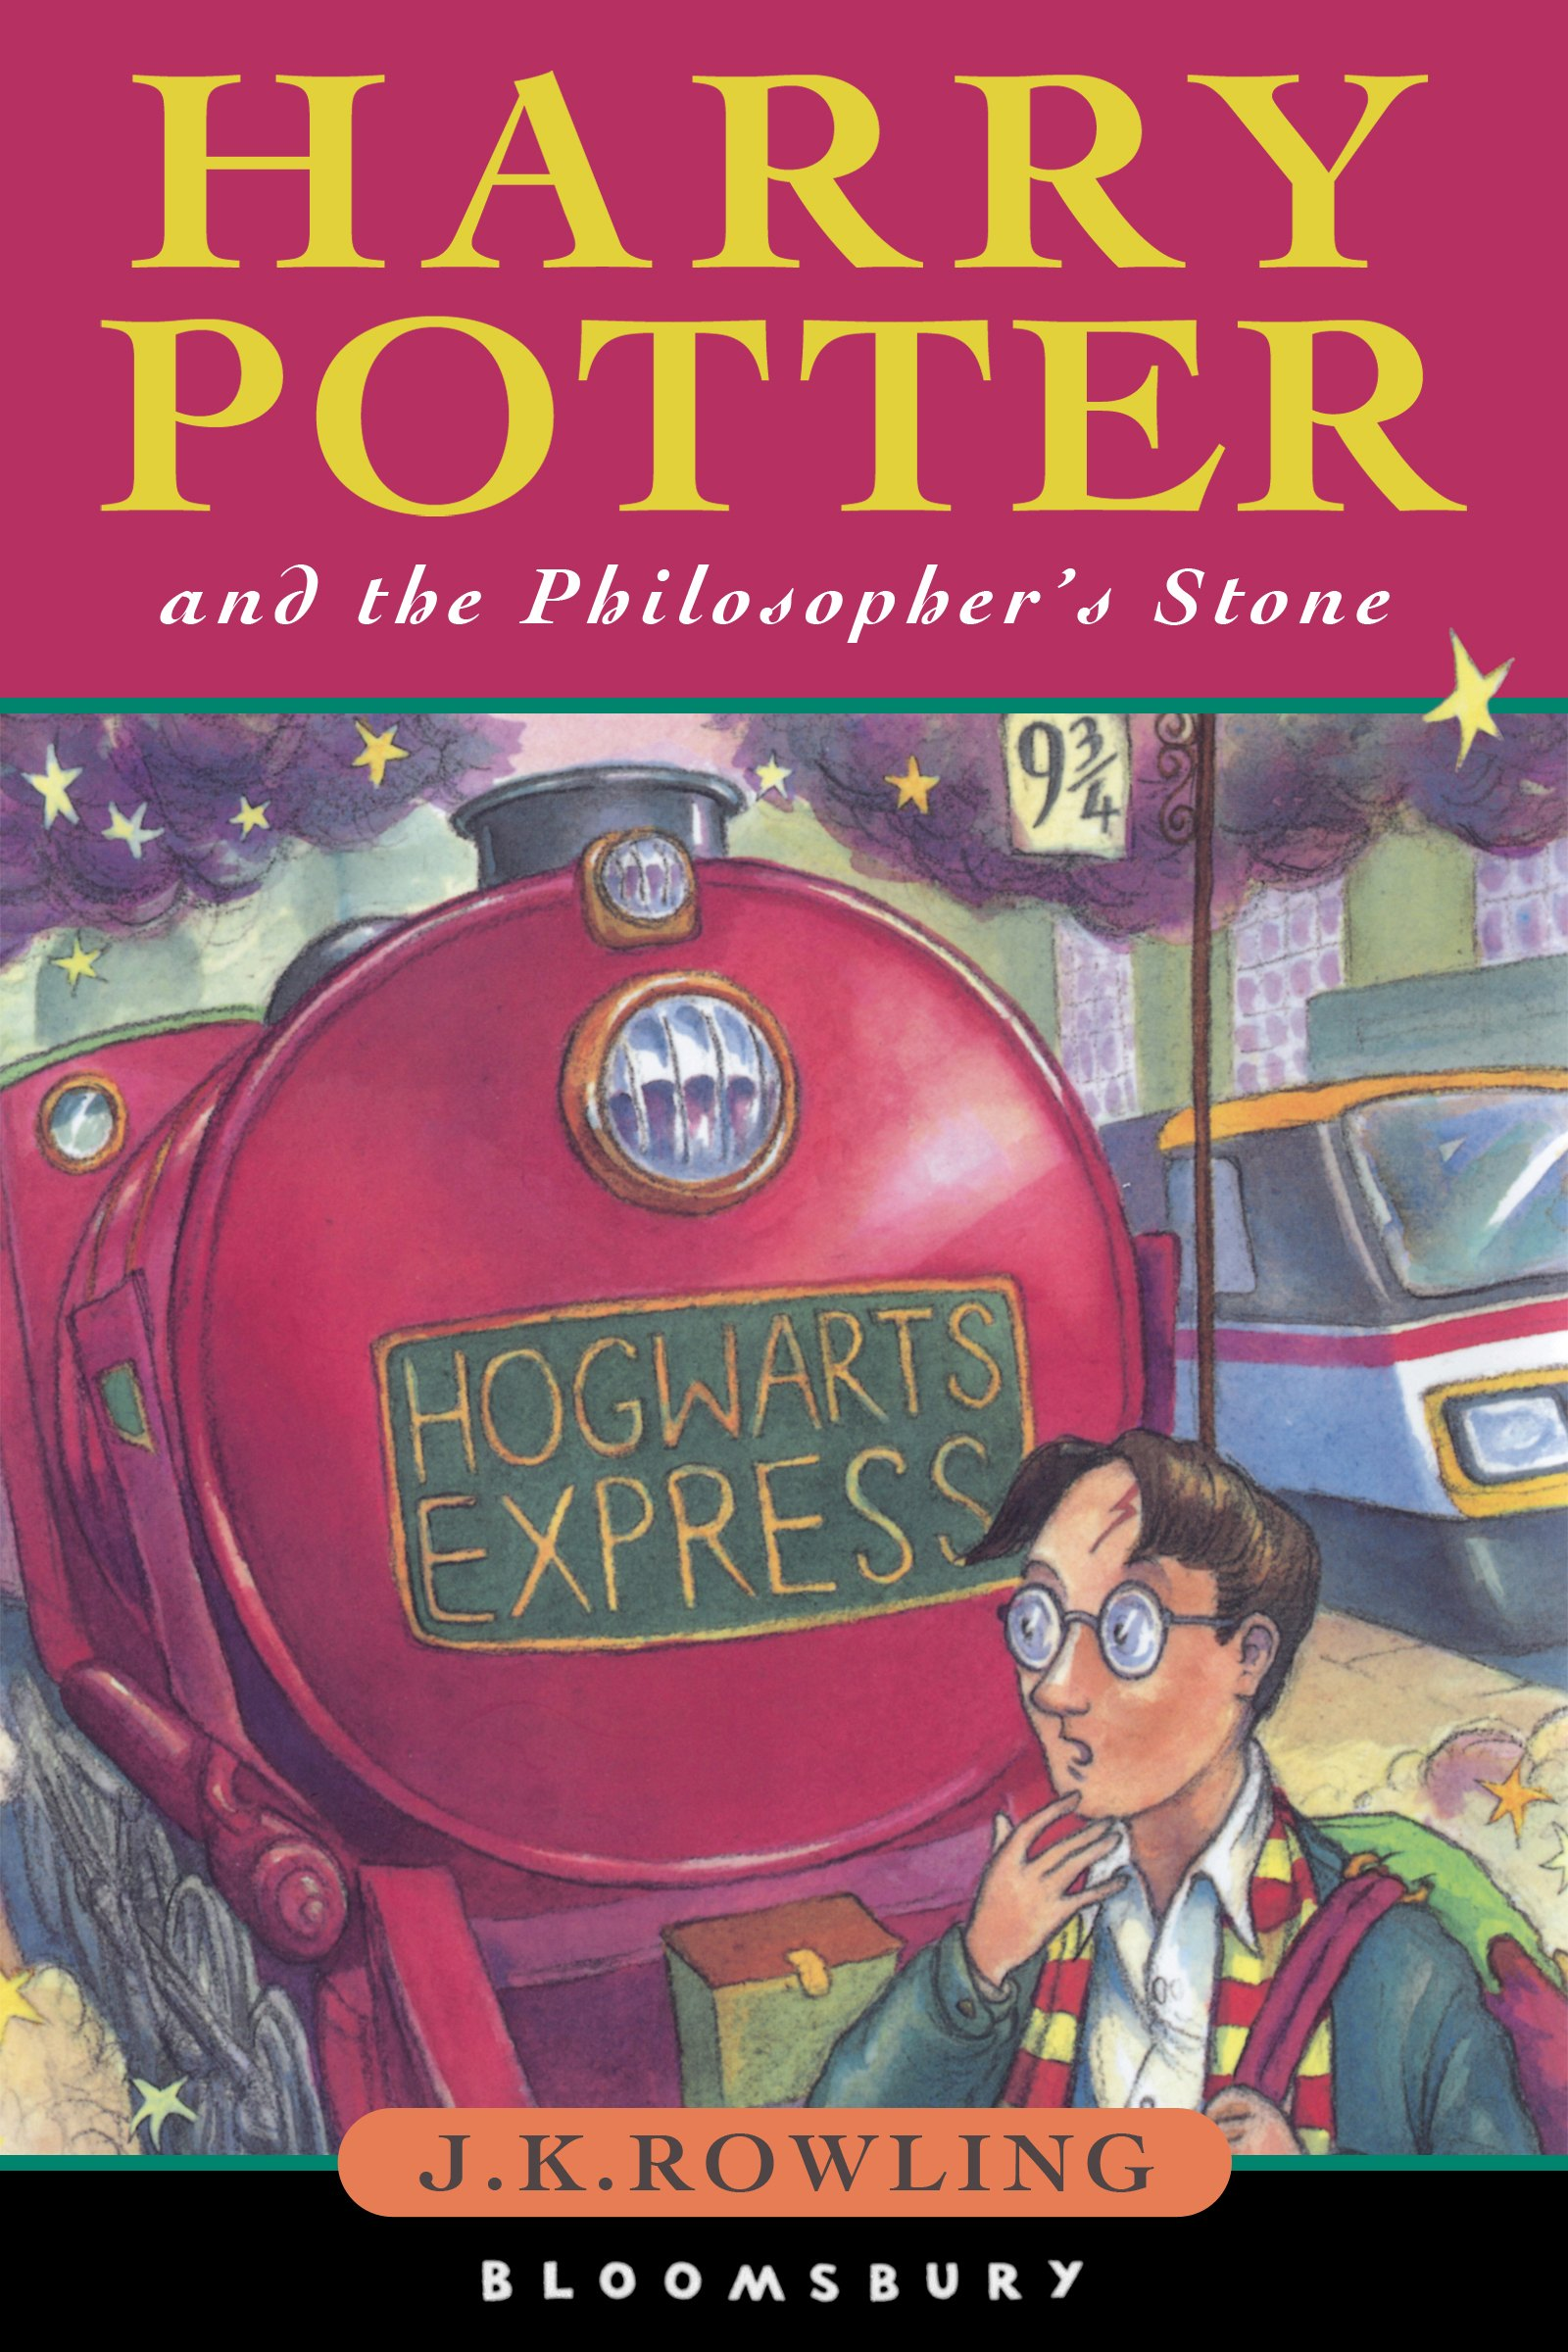 Harry Potter and the Philosopher's Stone book by JK Rowling